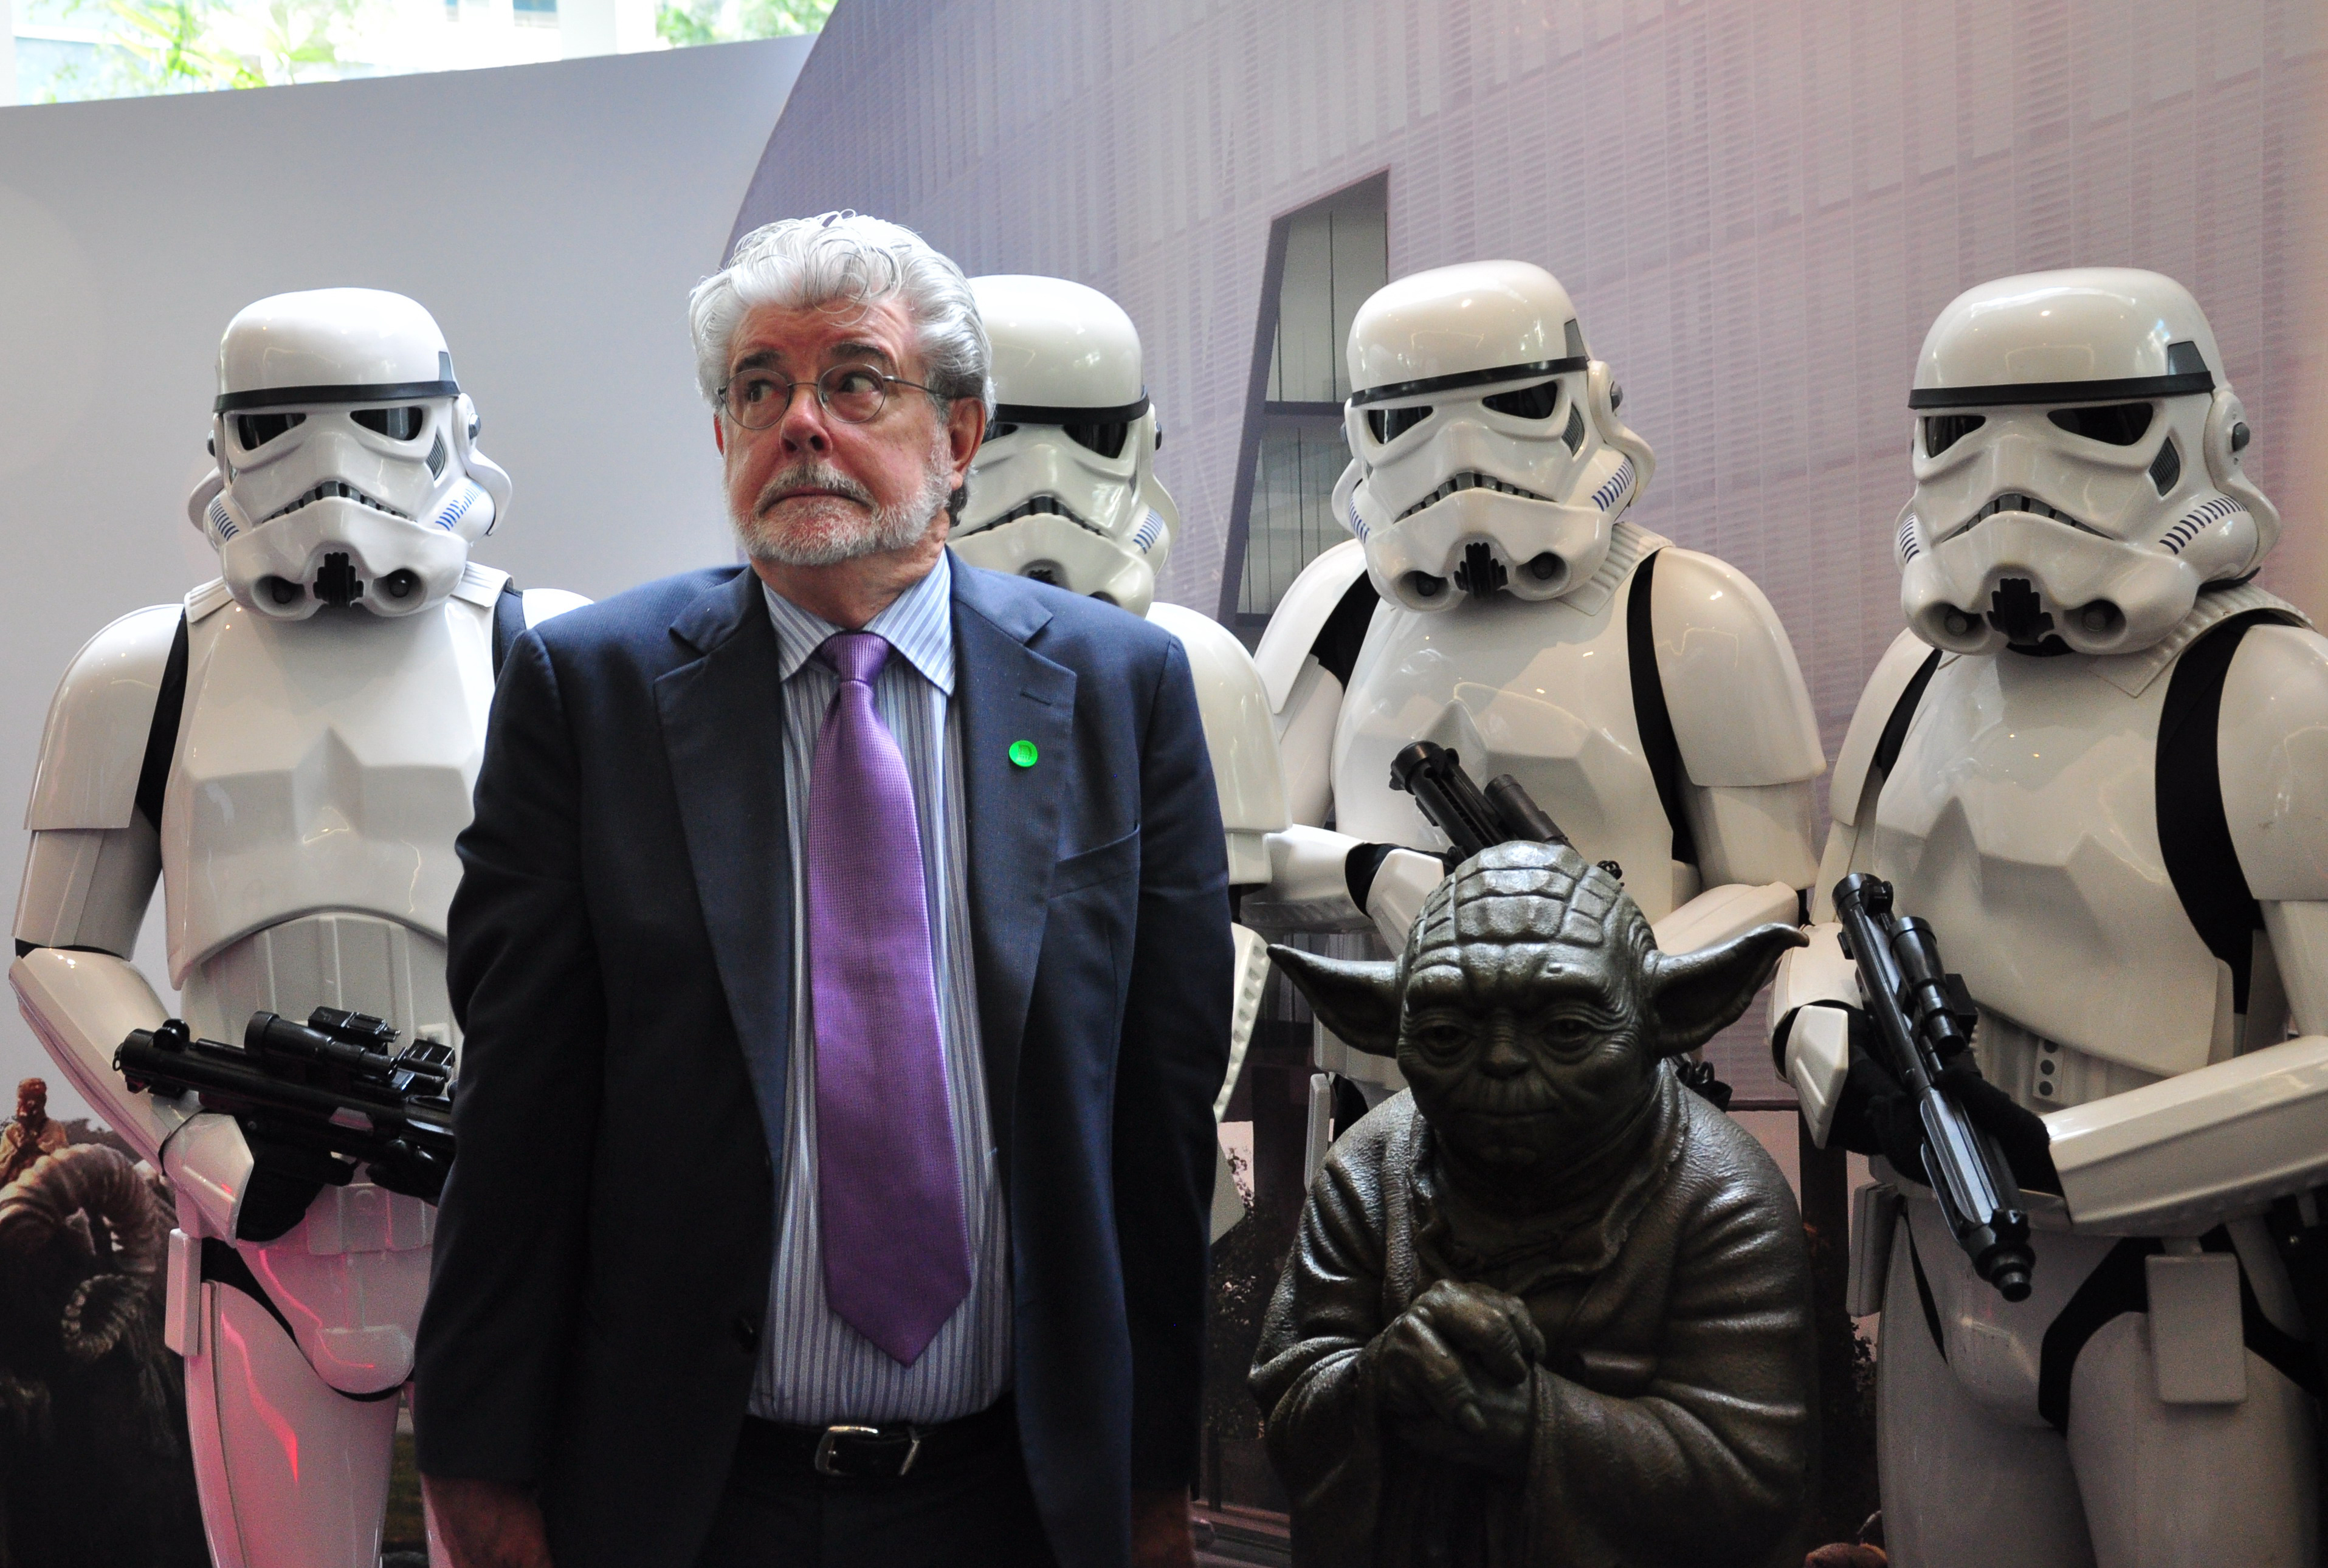 Star Wars creator George Lucas apologises for referring to Disney as 'white slavers'